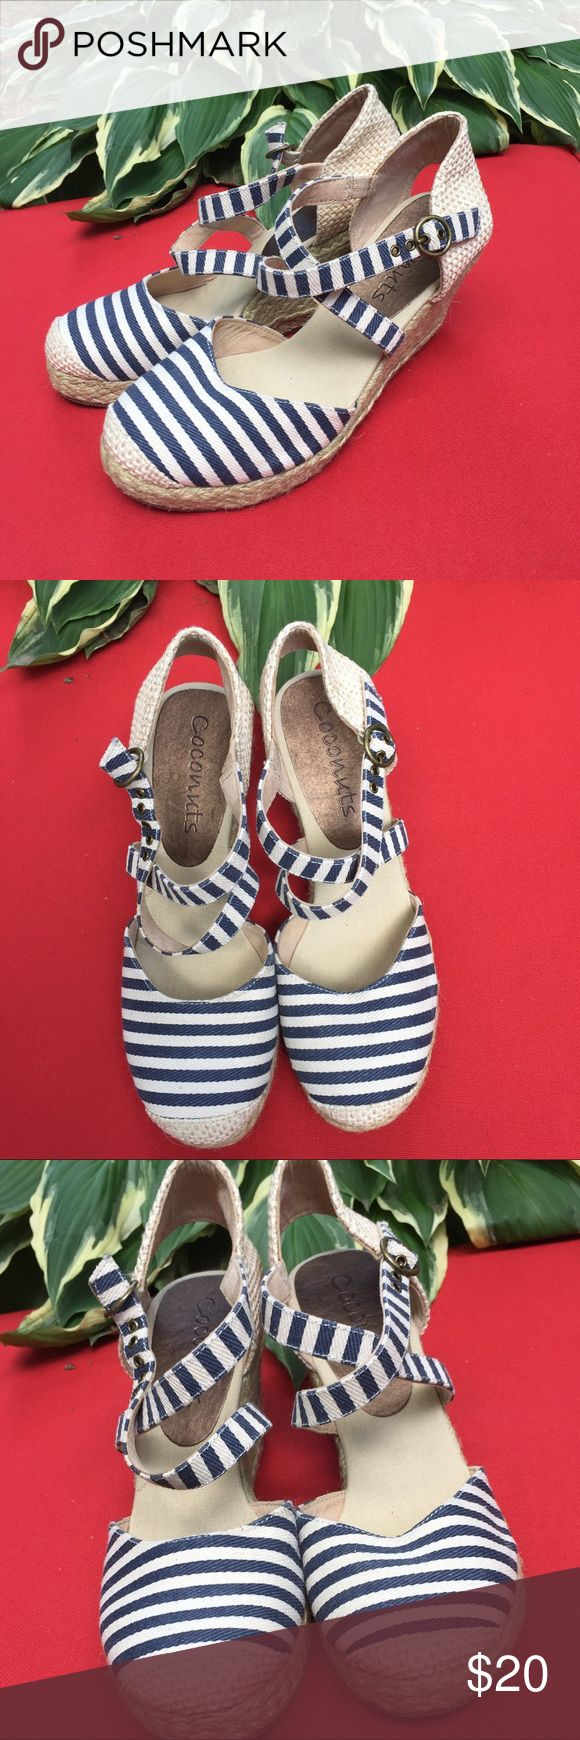 Blue and White Espadrilles by Coconuts NWOT, sticker still on bottom. Super cute, just too small for me, size 7. Blue and white stripes closed toe, low wedge espadrilles. Coconuts Shoes Wedges